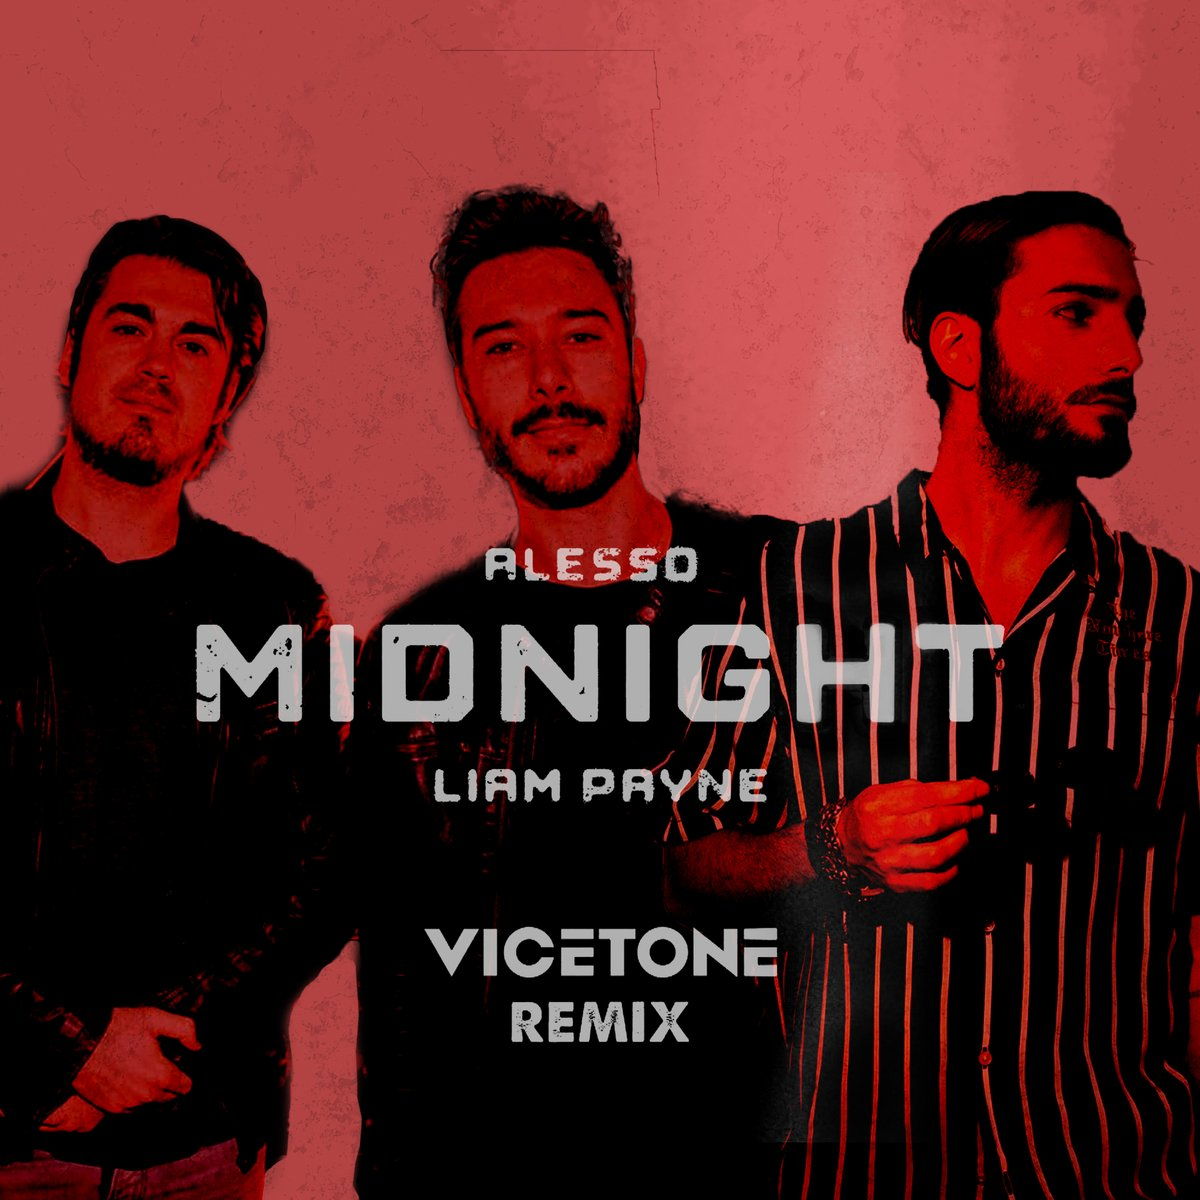 NEW REMIX! Alesso ft. Liam Payne - Midnight (Vicetone Remix) Coming this Friday, teaser tomorrow!!! 🔥 🔥